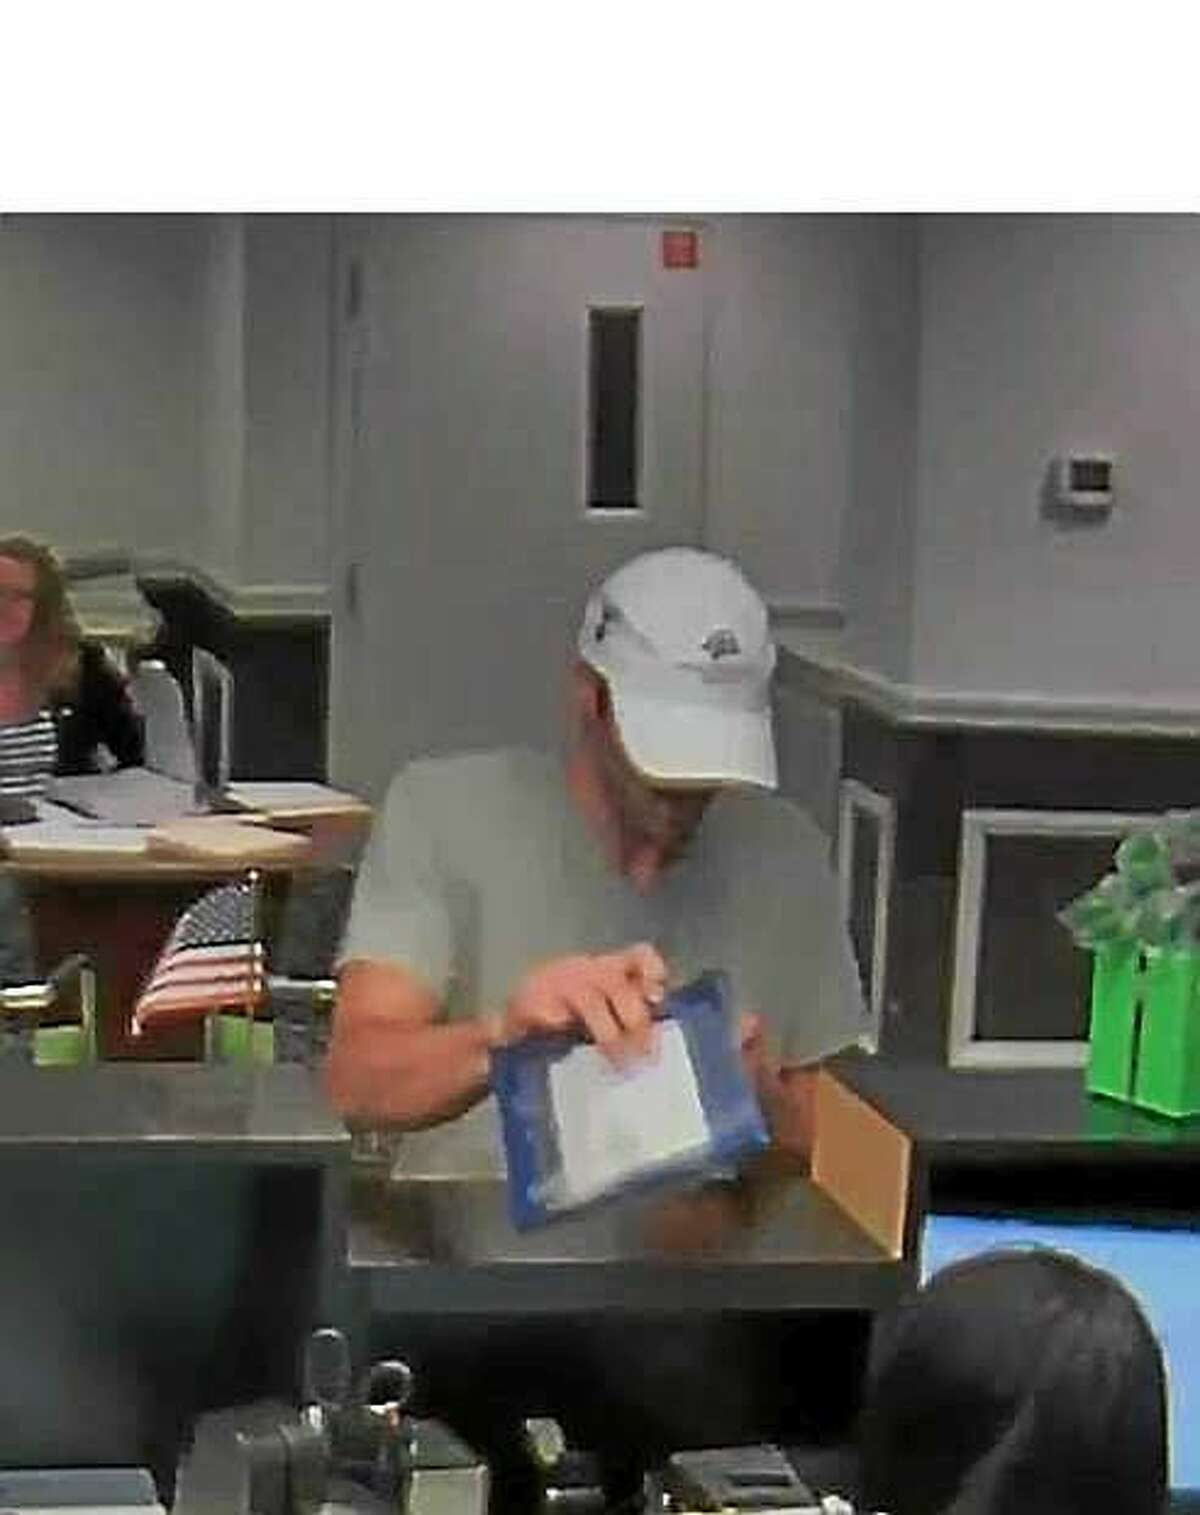 Police are looking for this man, who they say was involved in a robbery at TD Bank Friday night.